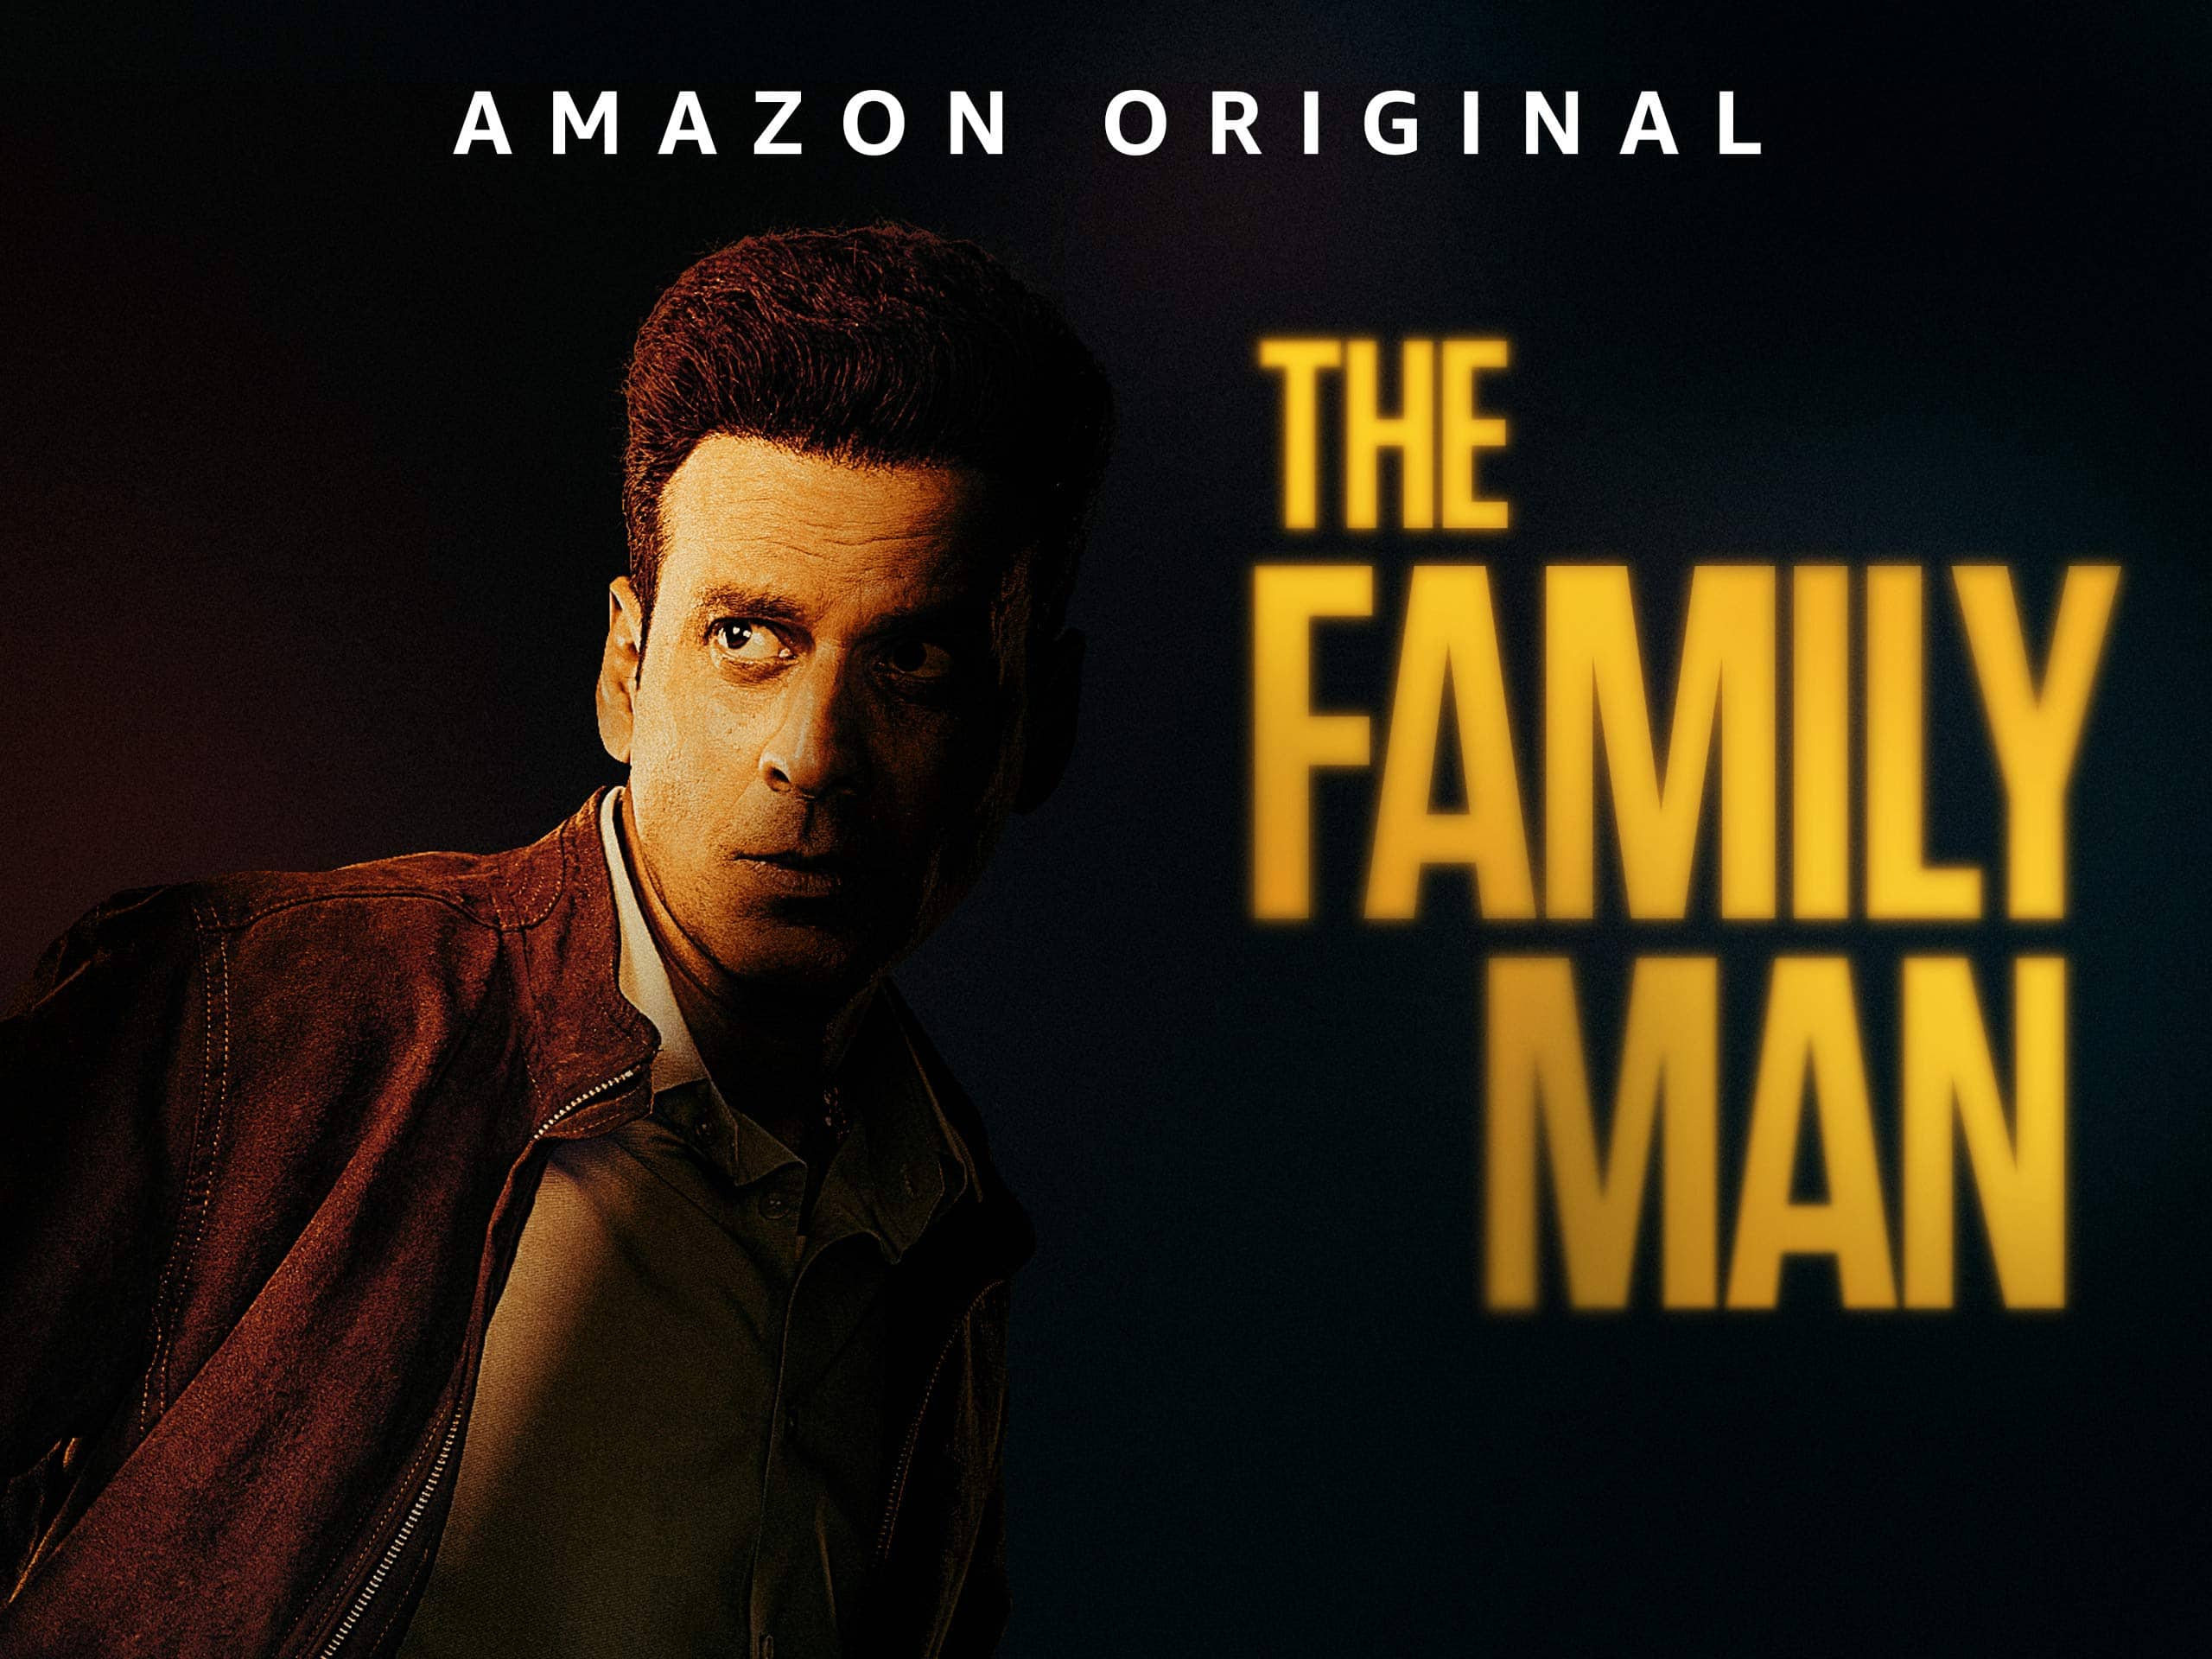 Amazon Prime Shows Mirzapur, The Family Man, Made In Heaven Face Budgetary Cuts Despite Being Greenlit Before Lockdown